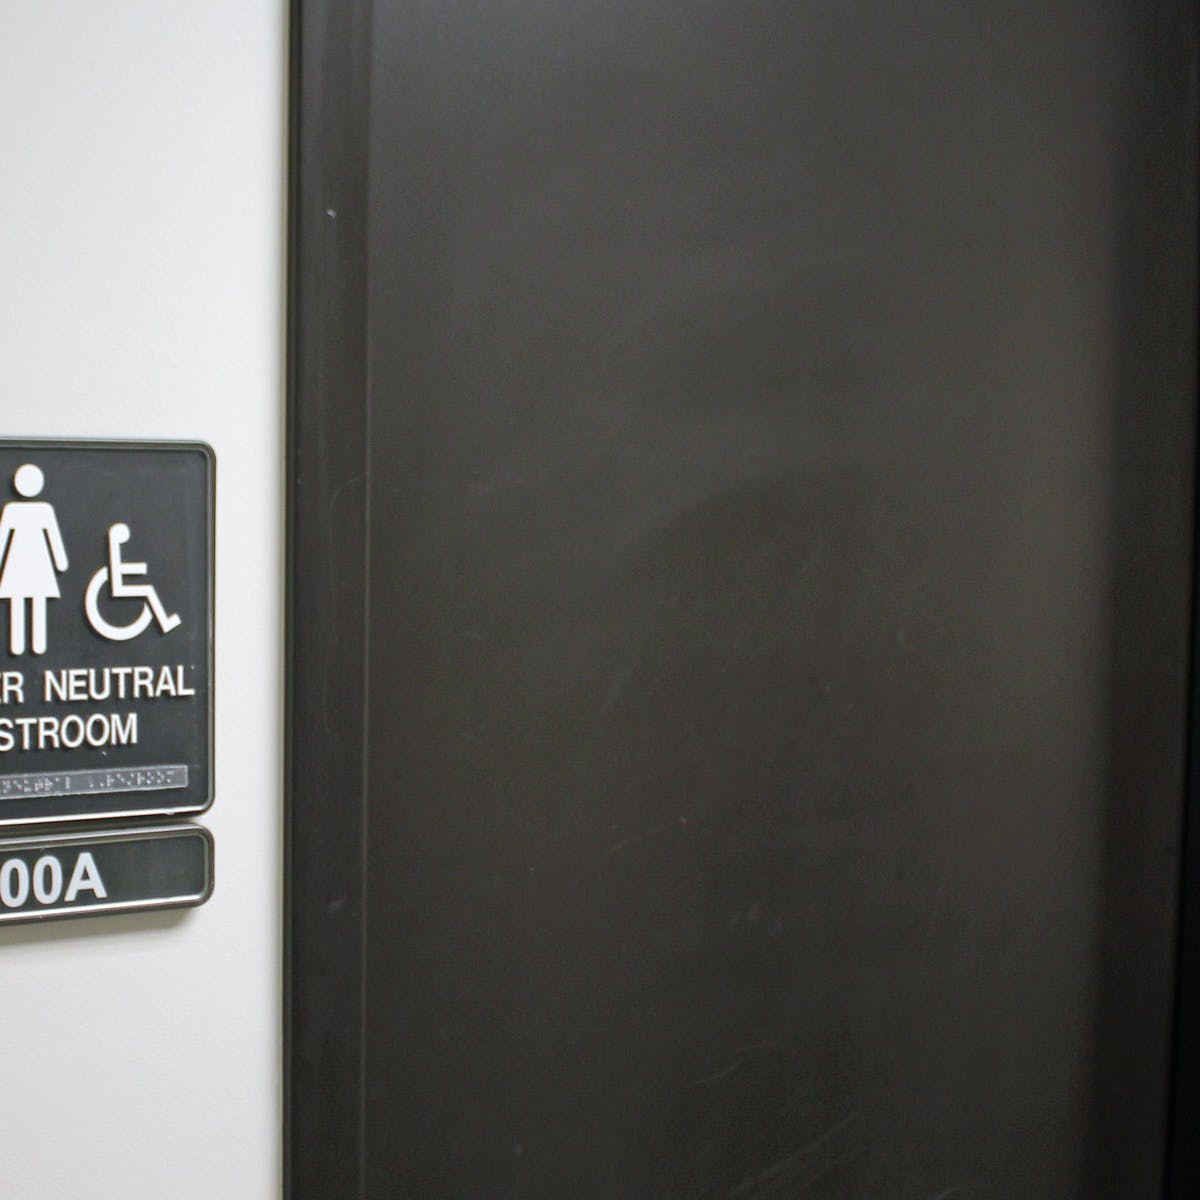 Explainer: Why transgender students need 'safe' bathrooms